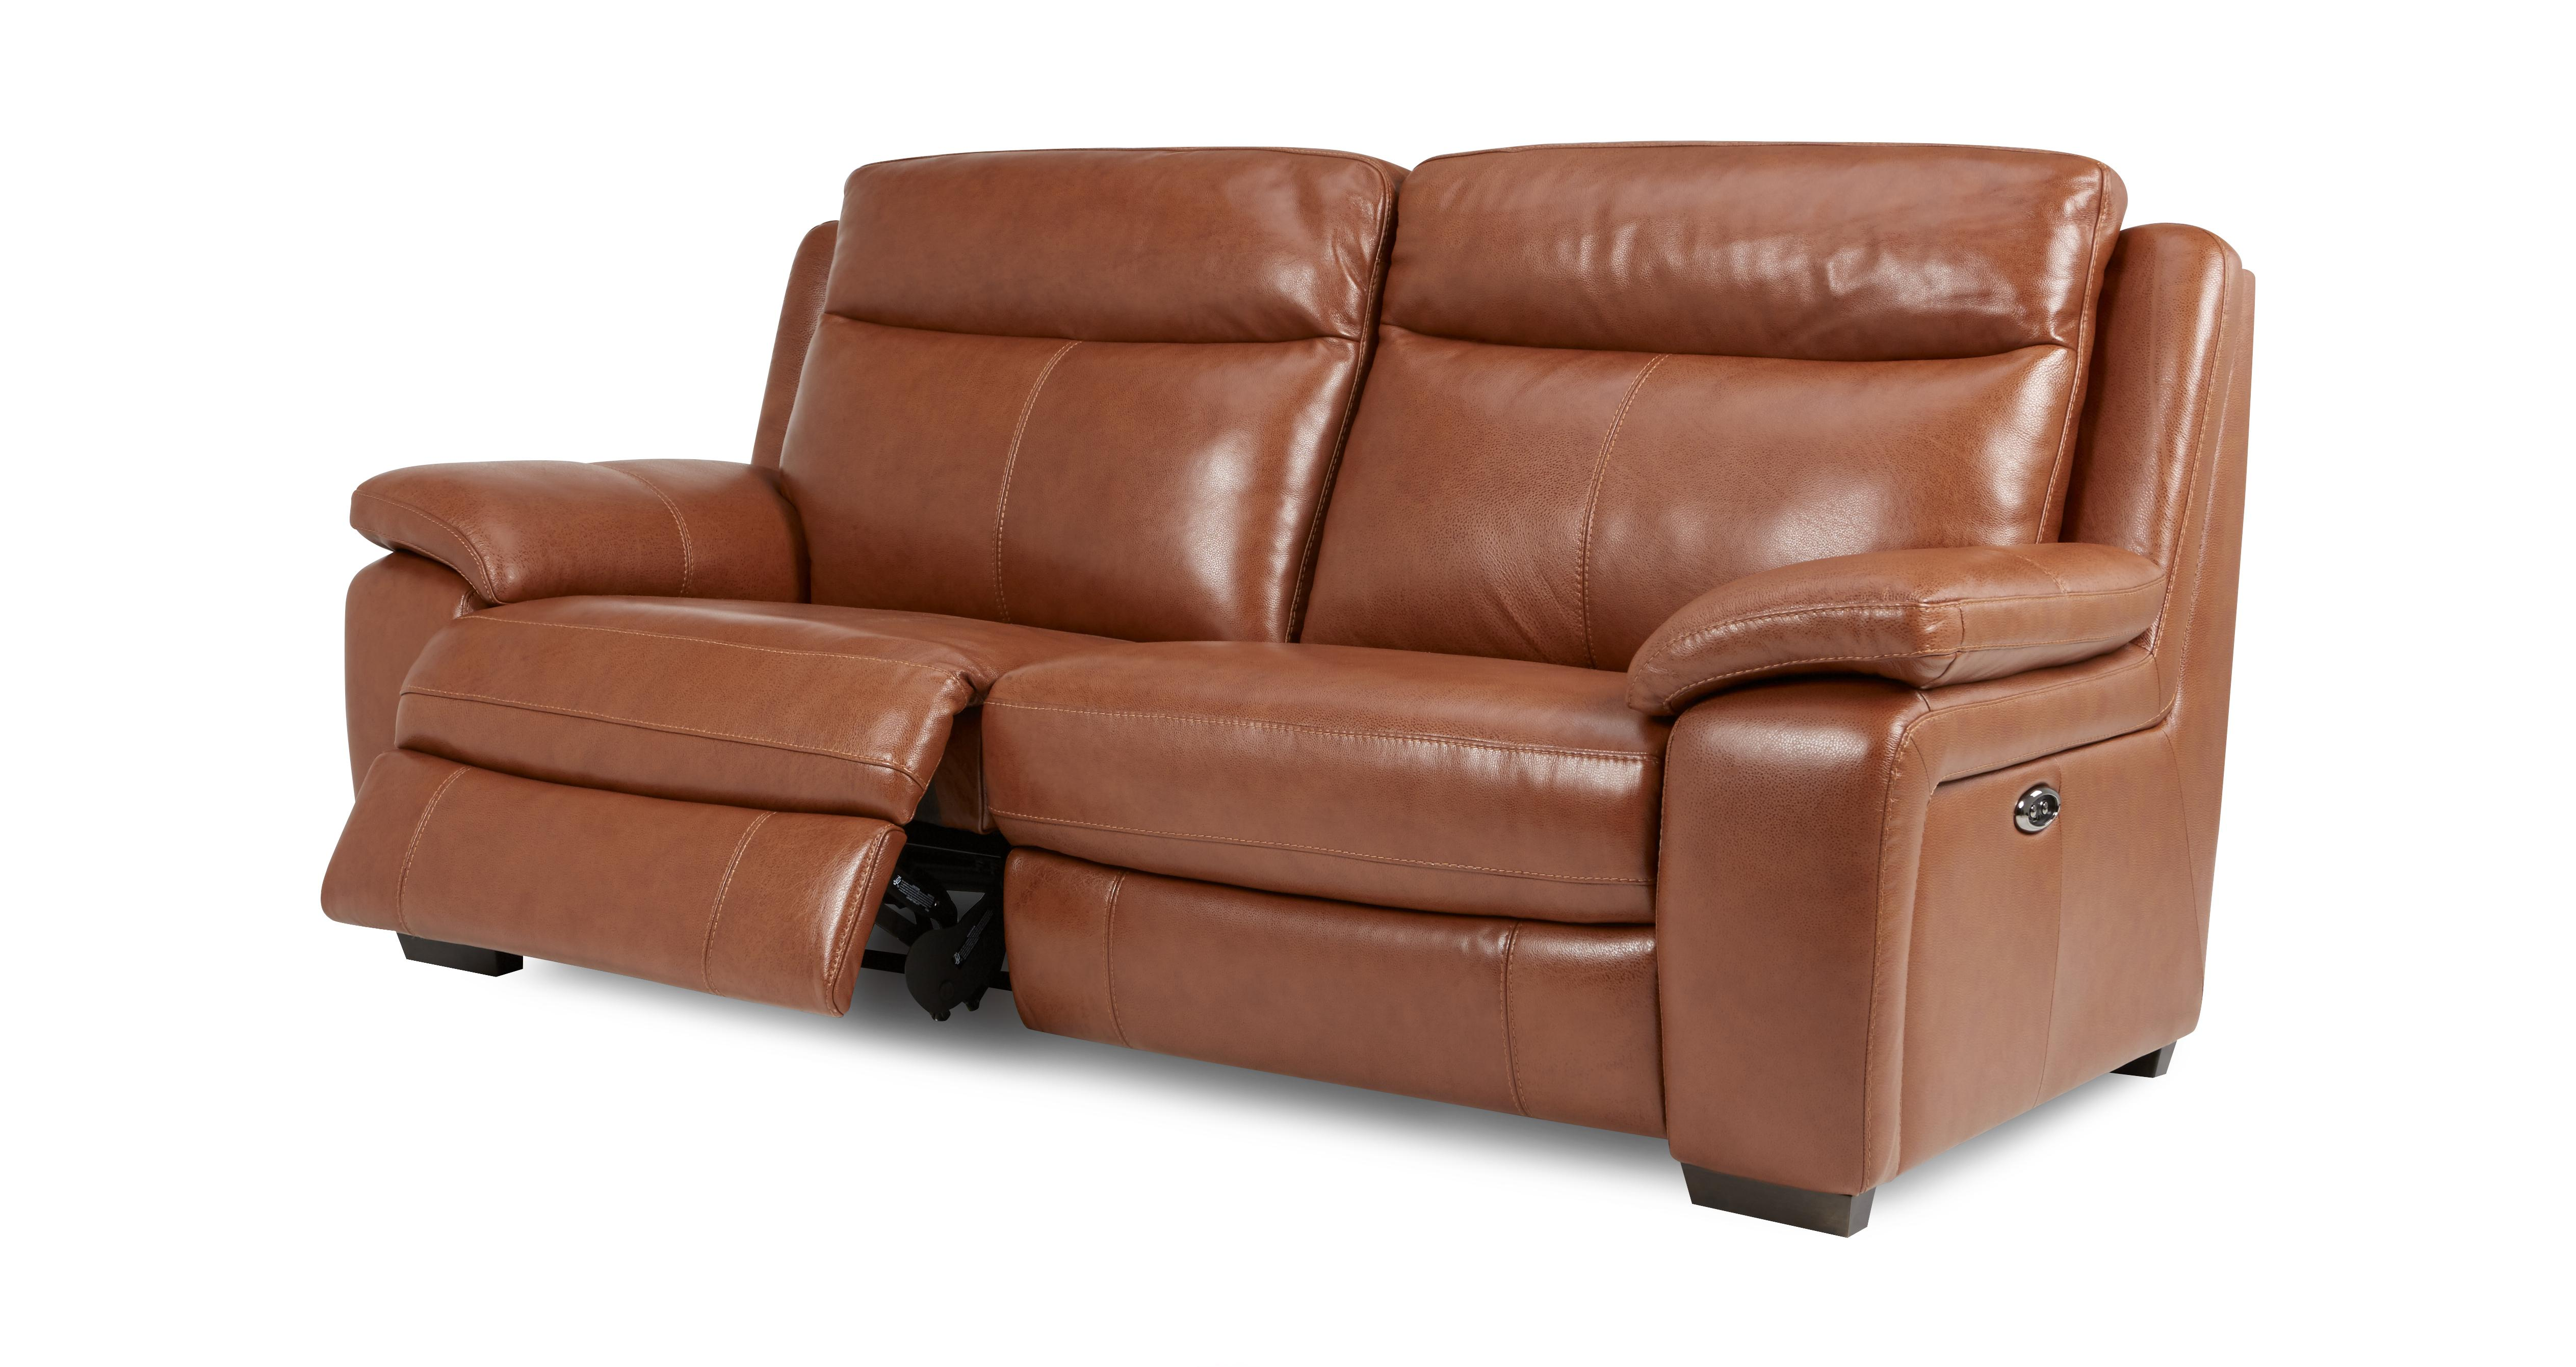 Octavious 3 Seater Electric Recliner Brazil With Leather